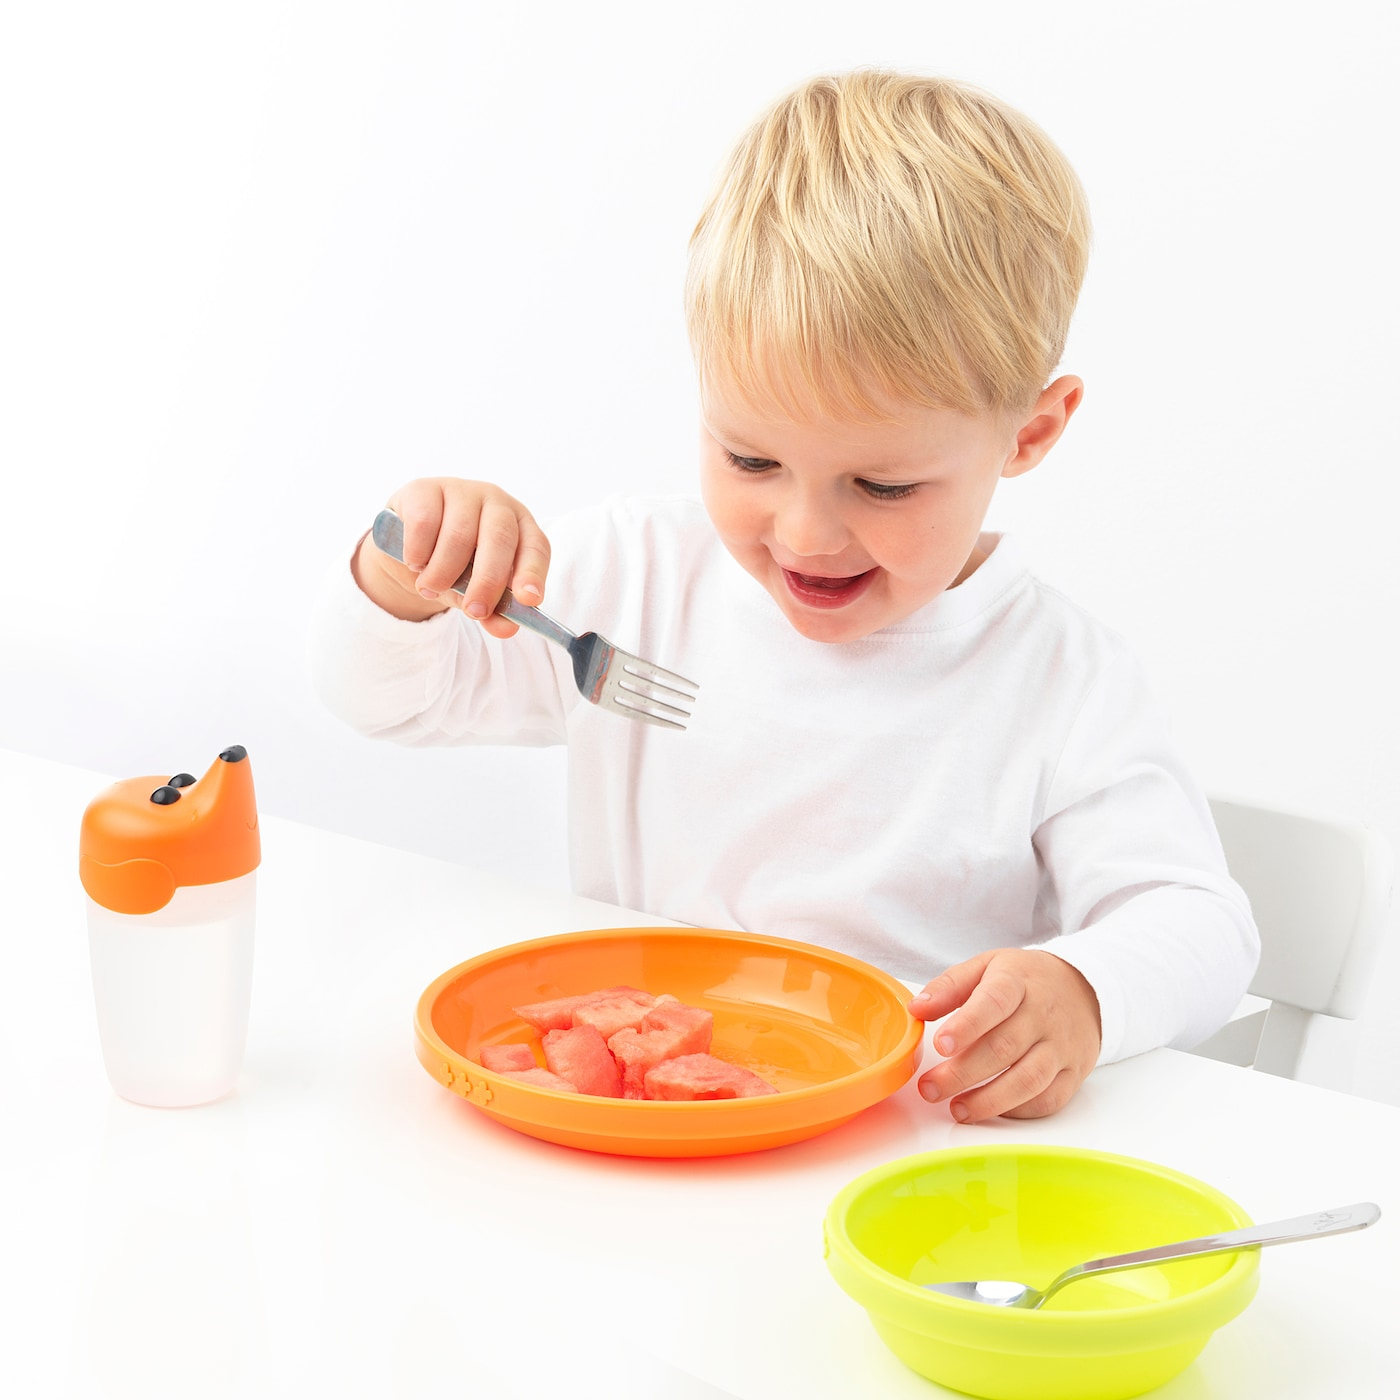 And Kids Baby Safe Feeding Set For Babies Toddlers Utensils CB EAT Flatware